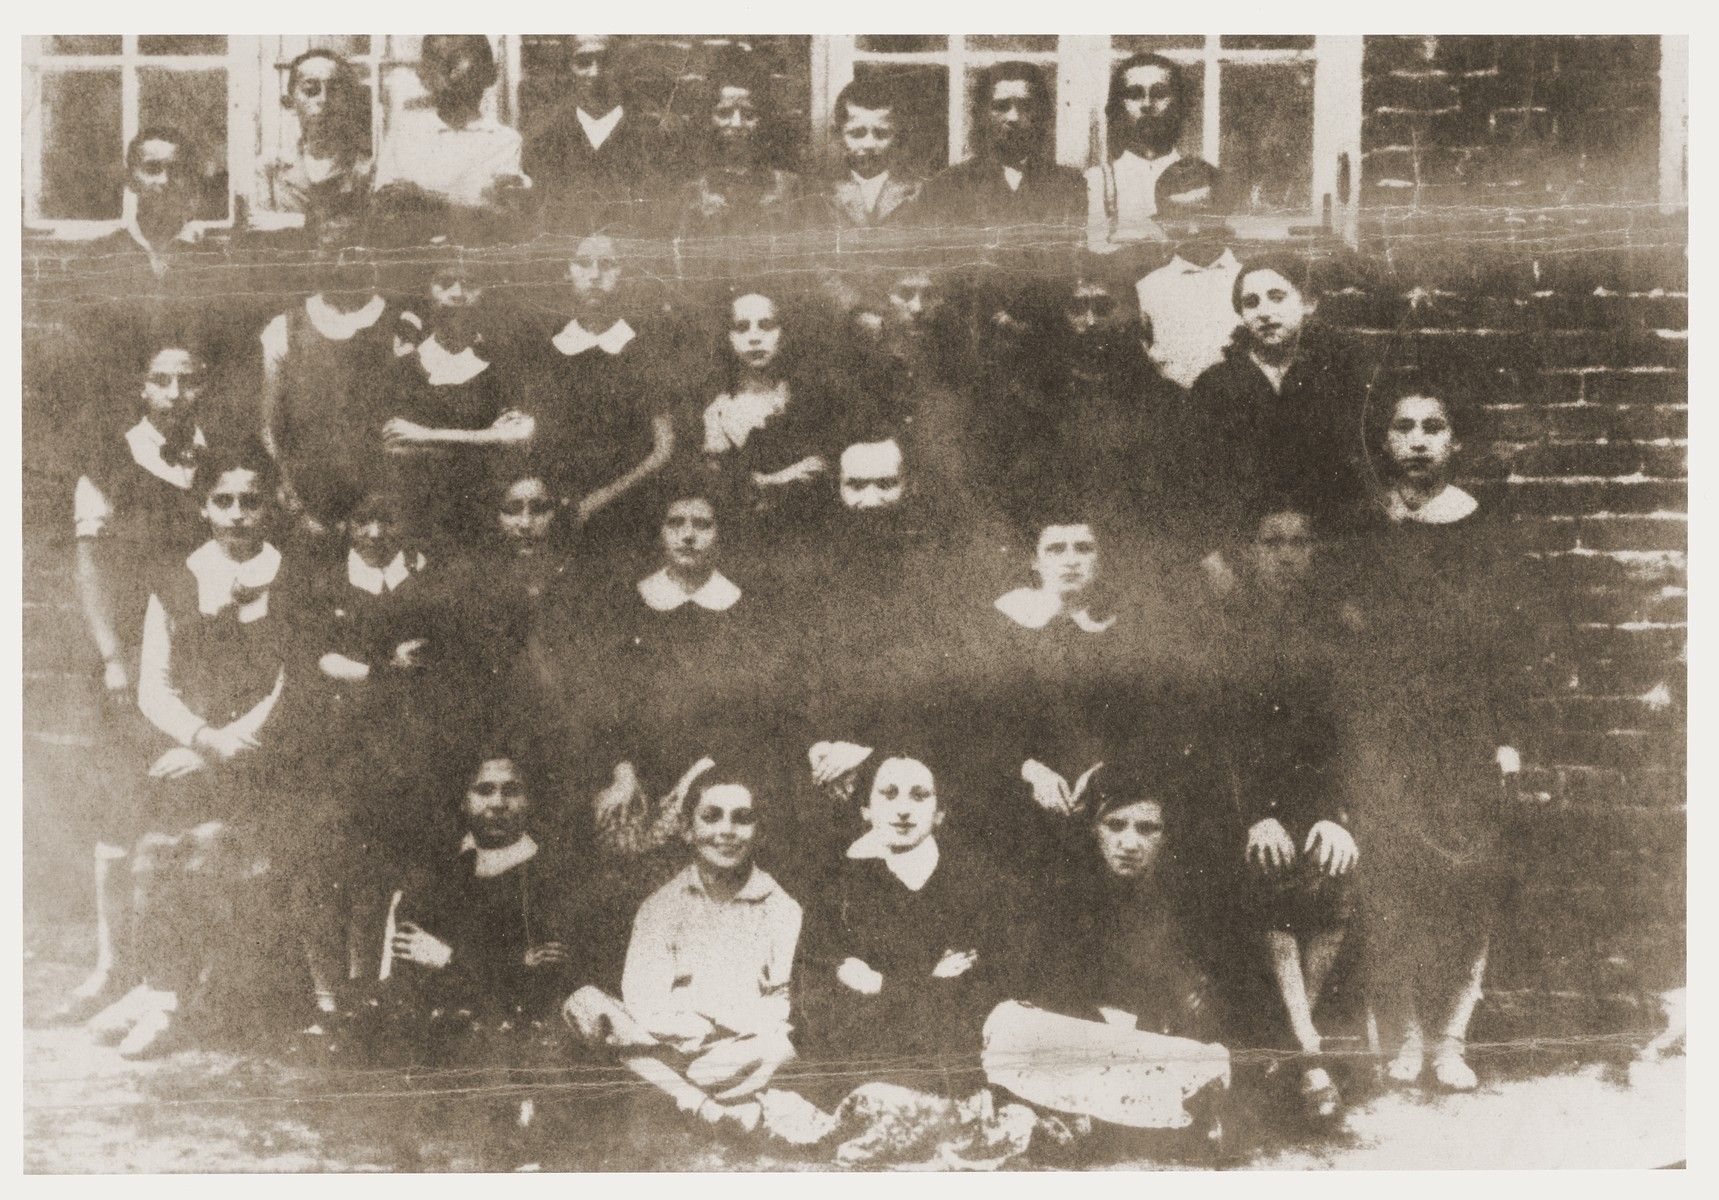 Class portrait of students at a Jewish school in Tarczyn.   Among those pictured is Sylvia Kramarska (front row, second from the right).  Only three of the 28 children in the class survived the war.  Mrs. Kolski kept all of her pre-war and wartime photos in a cloth pouch around her neck after her mother appeared to her in a dream telling her to do so. She was thus able to preserve them throughout the two year period she was in hiding.